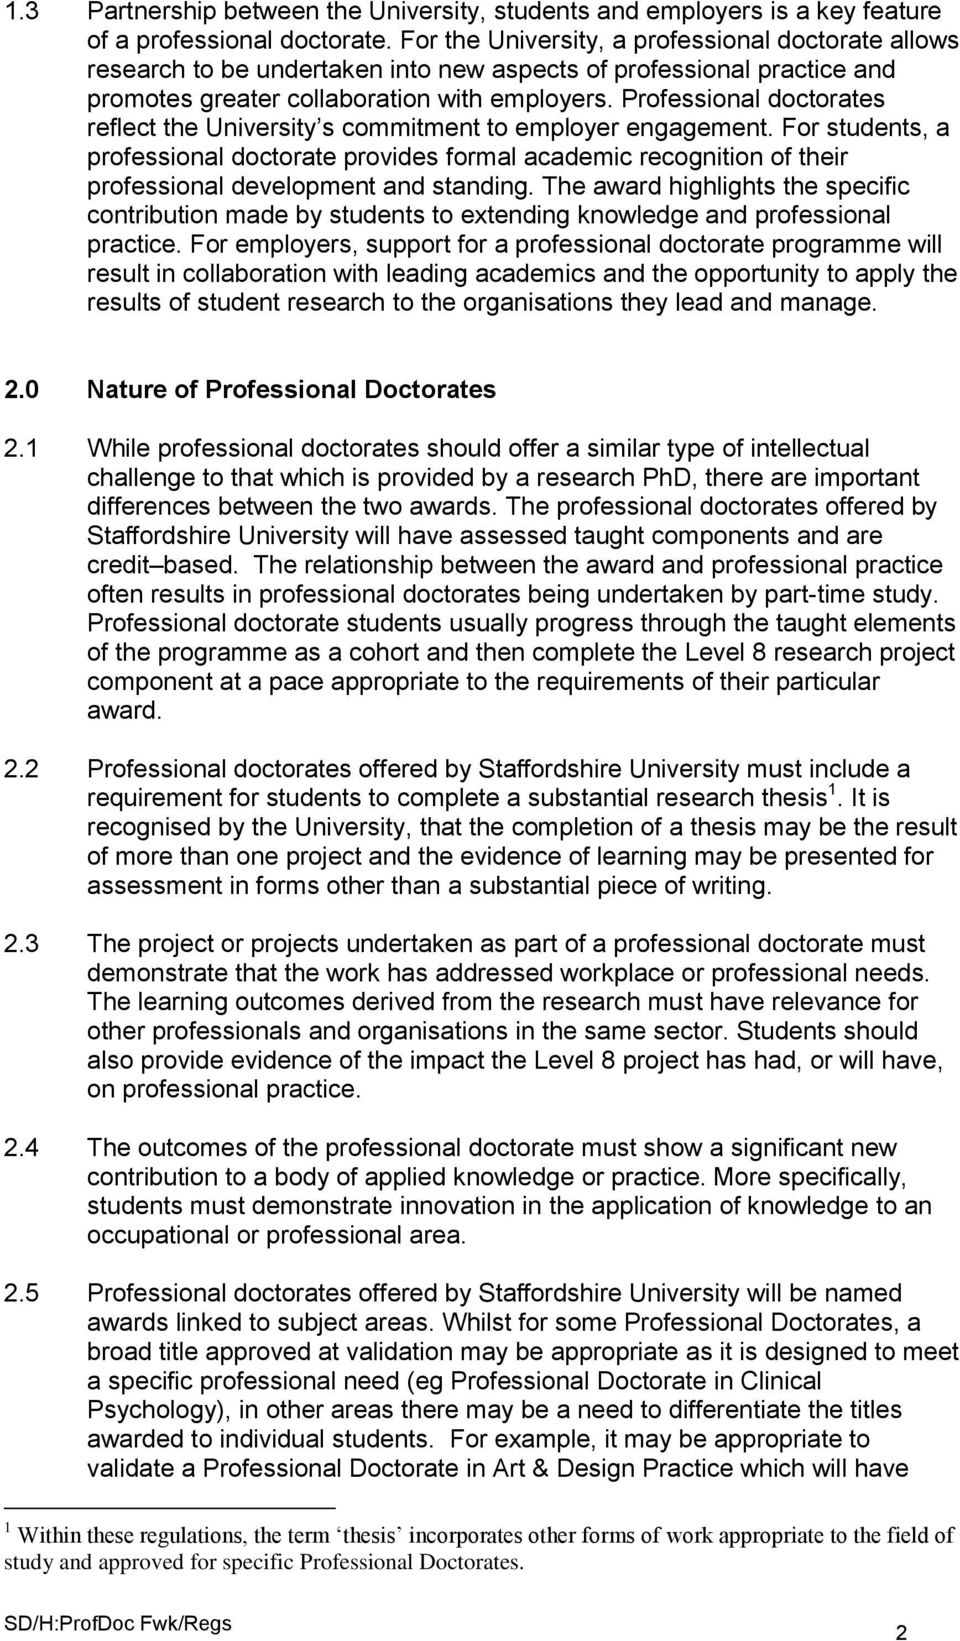 Professional doctorates reflect the University s commitment to employer engagement.